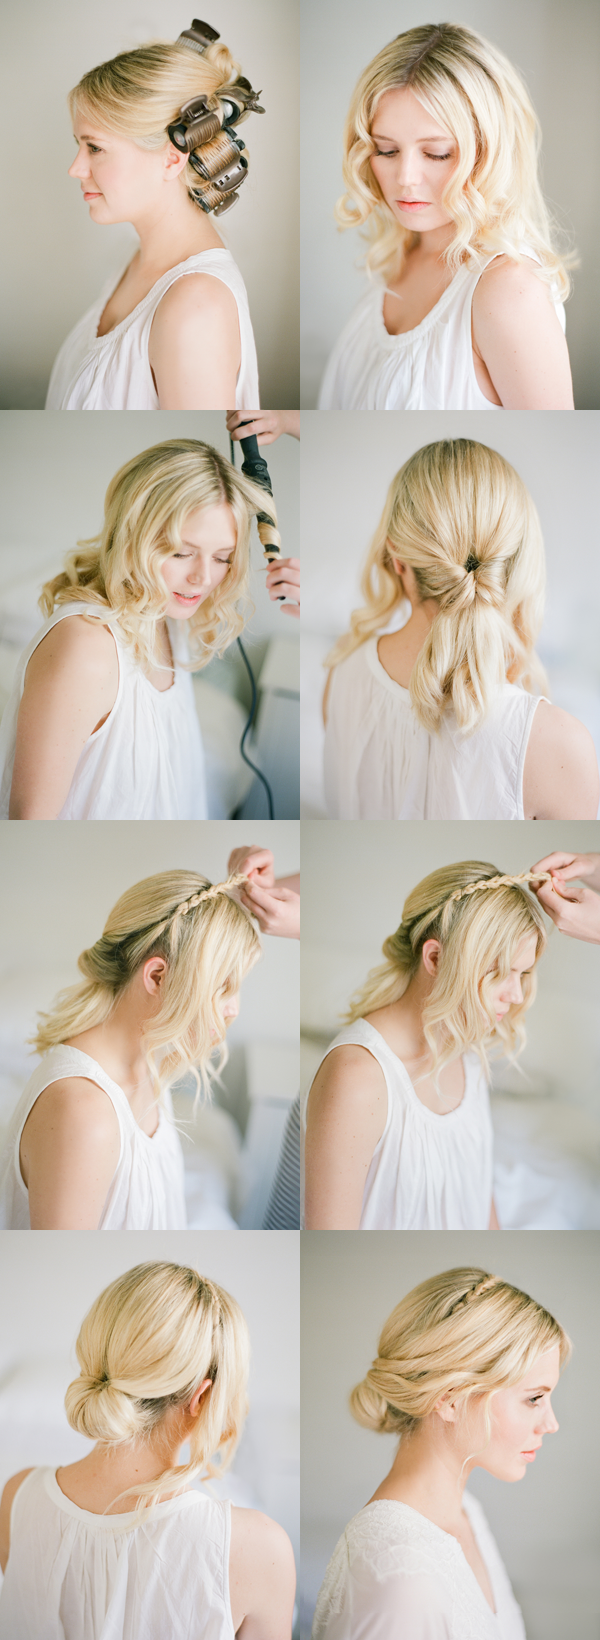 hairstyles (3)